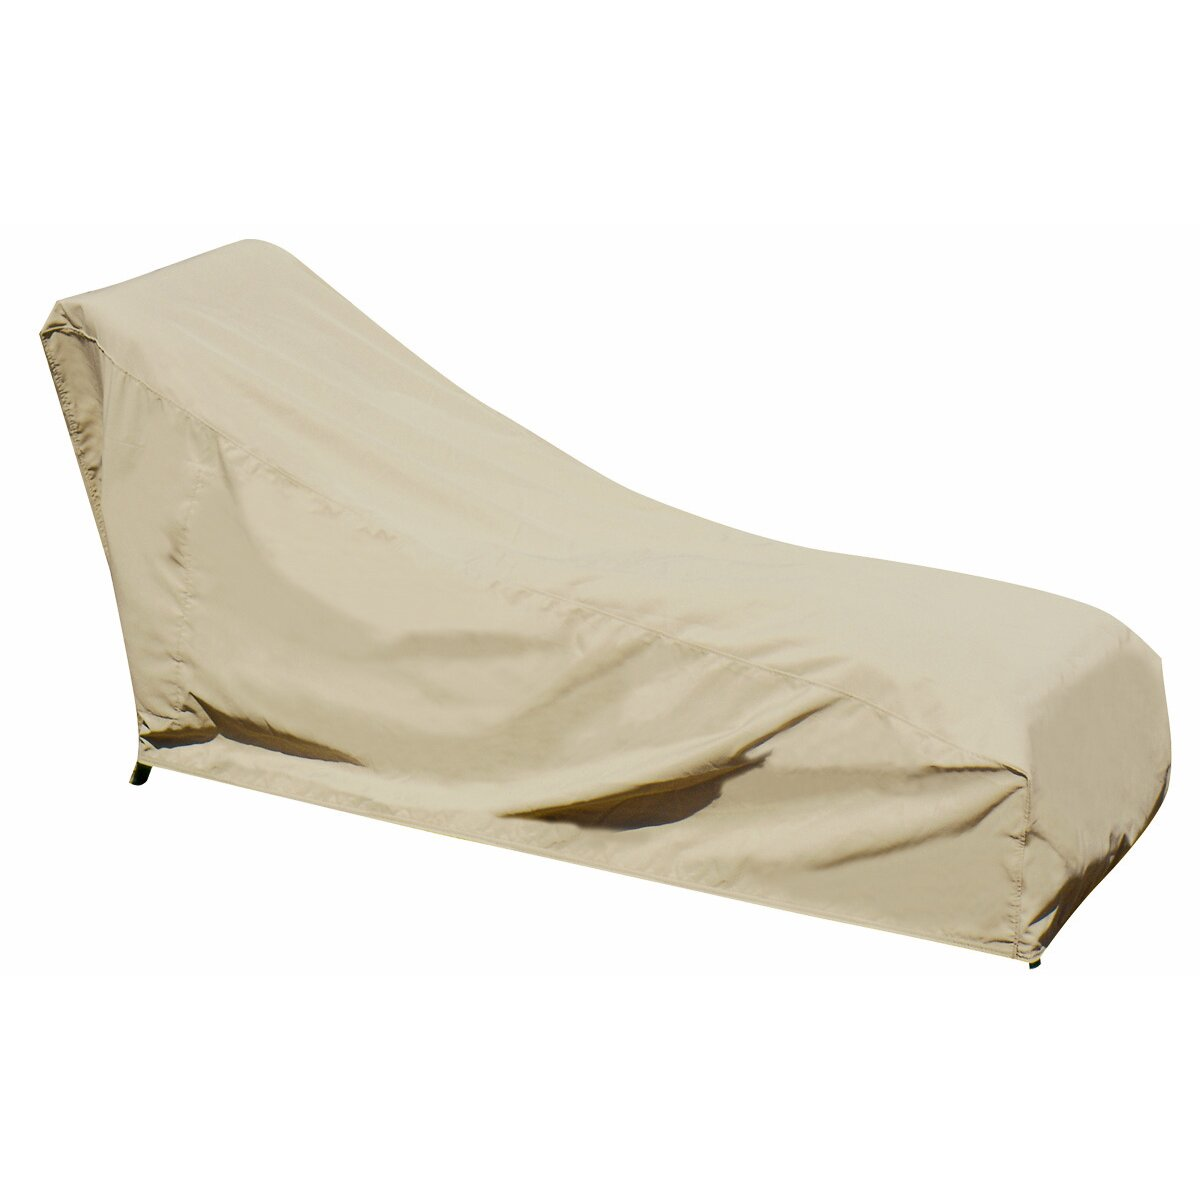 Blue Wave Chaise Lounge Winter Cover in Beige